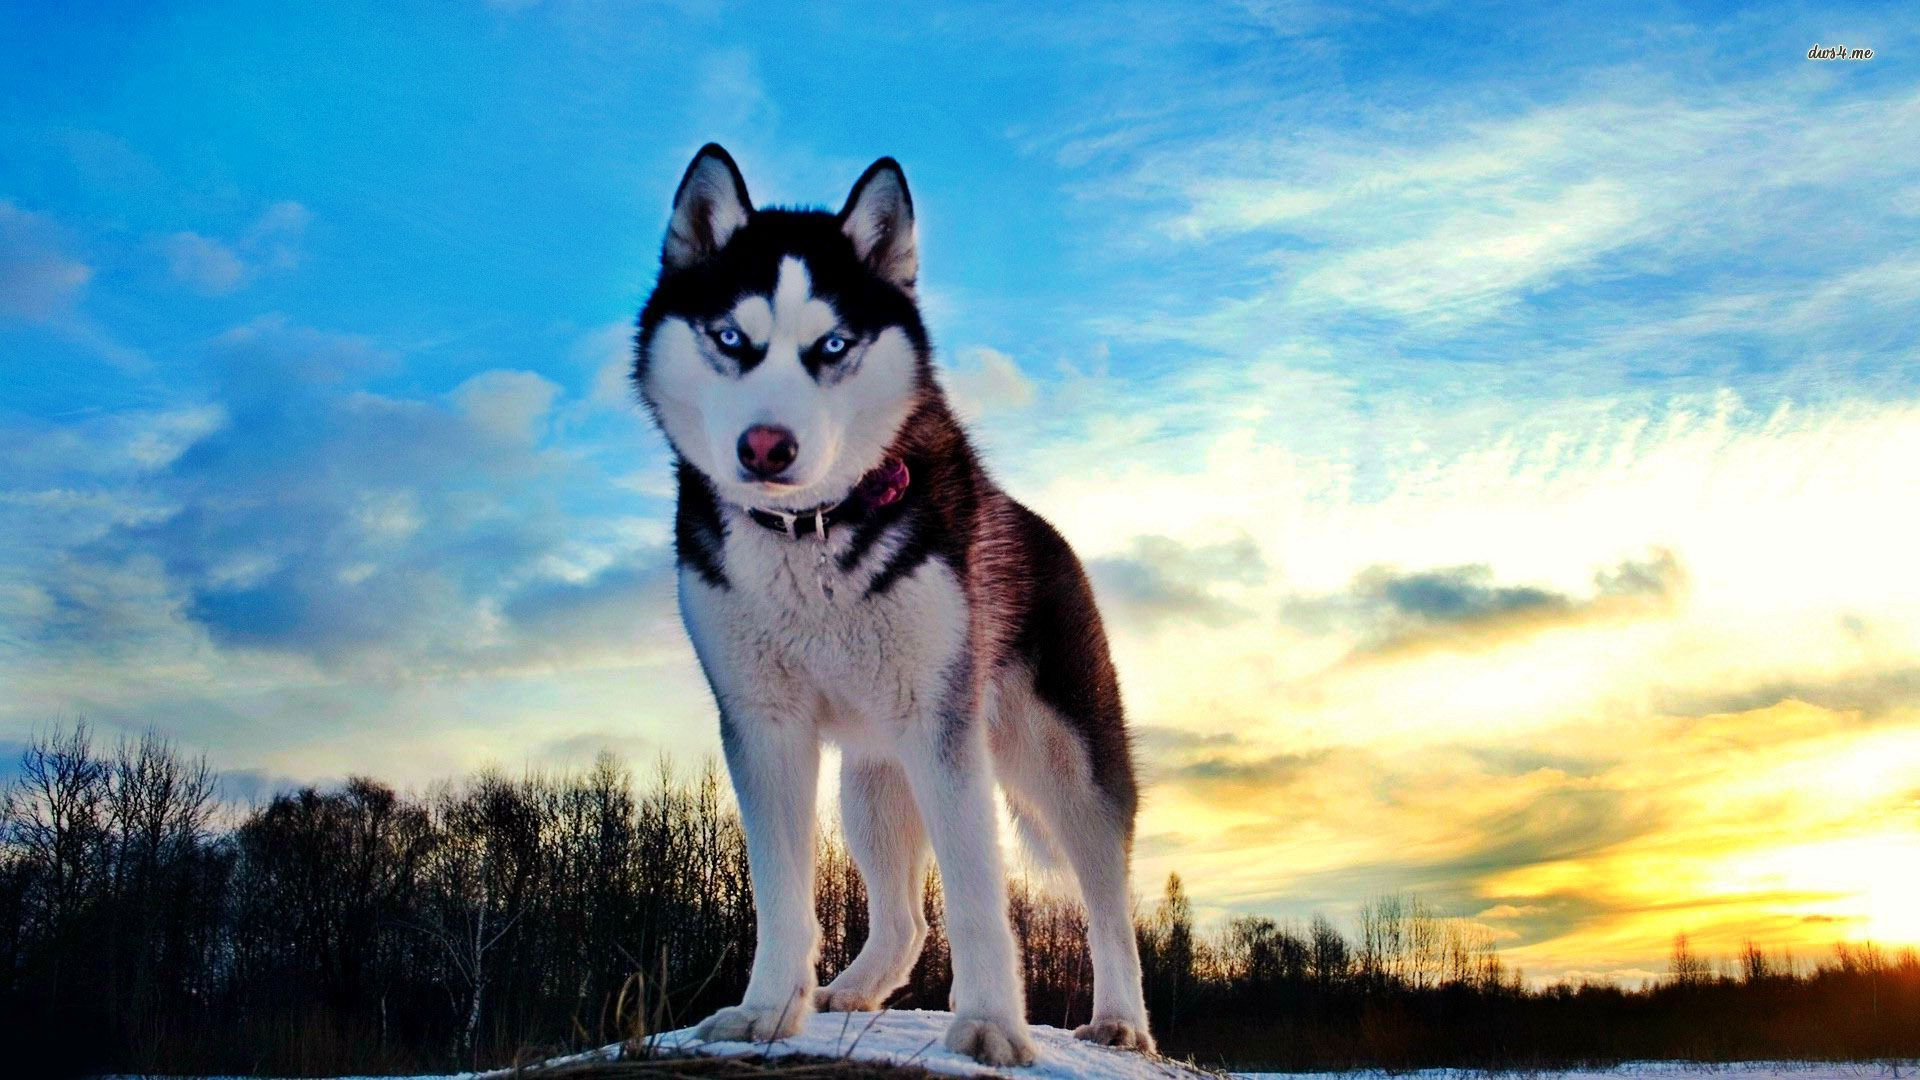 Siberian Husky Wallpapers Wallpaper Cave Сибирские хаски